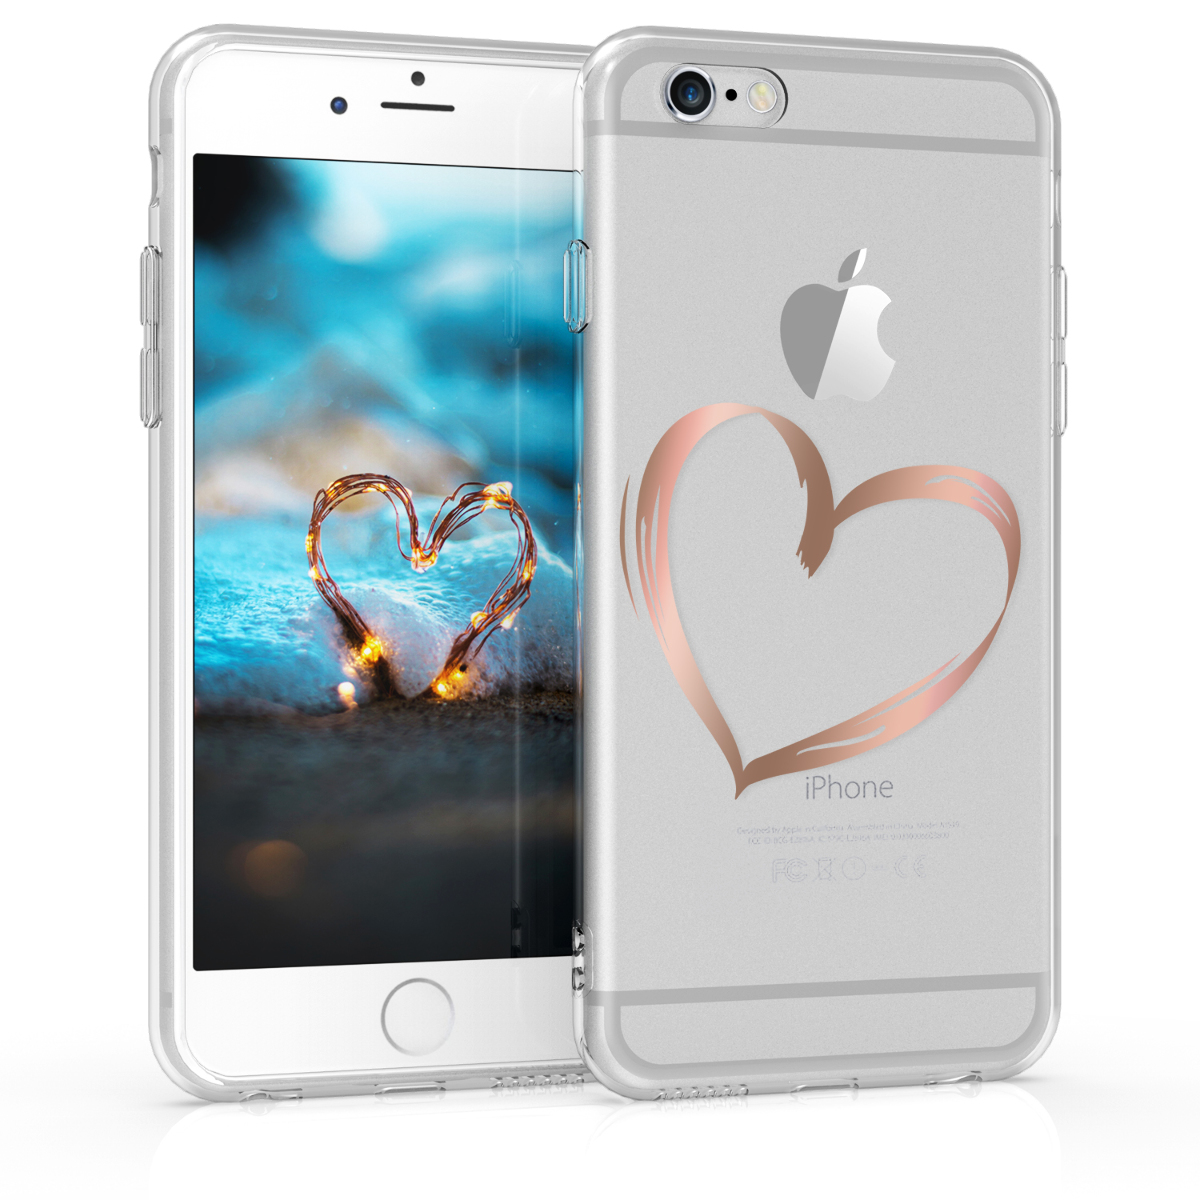 KW Θήκη Σιλικόνης Apple iPhone 6 Plus / 6S Plus - Rose Gold / Transparent (43701.10)